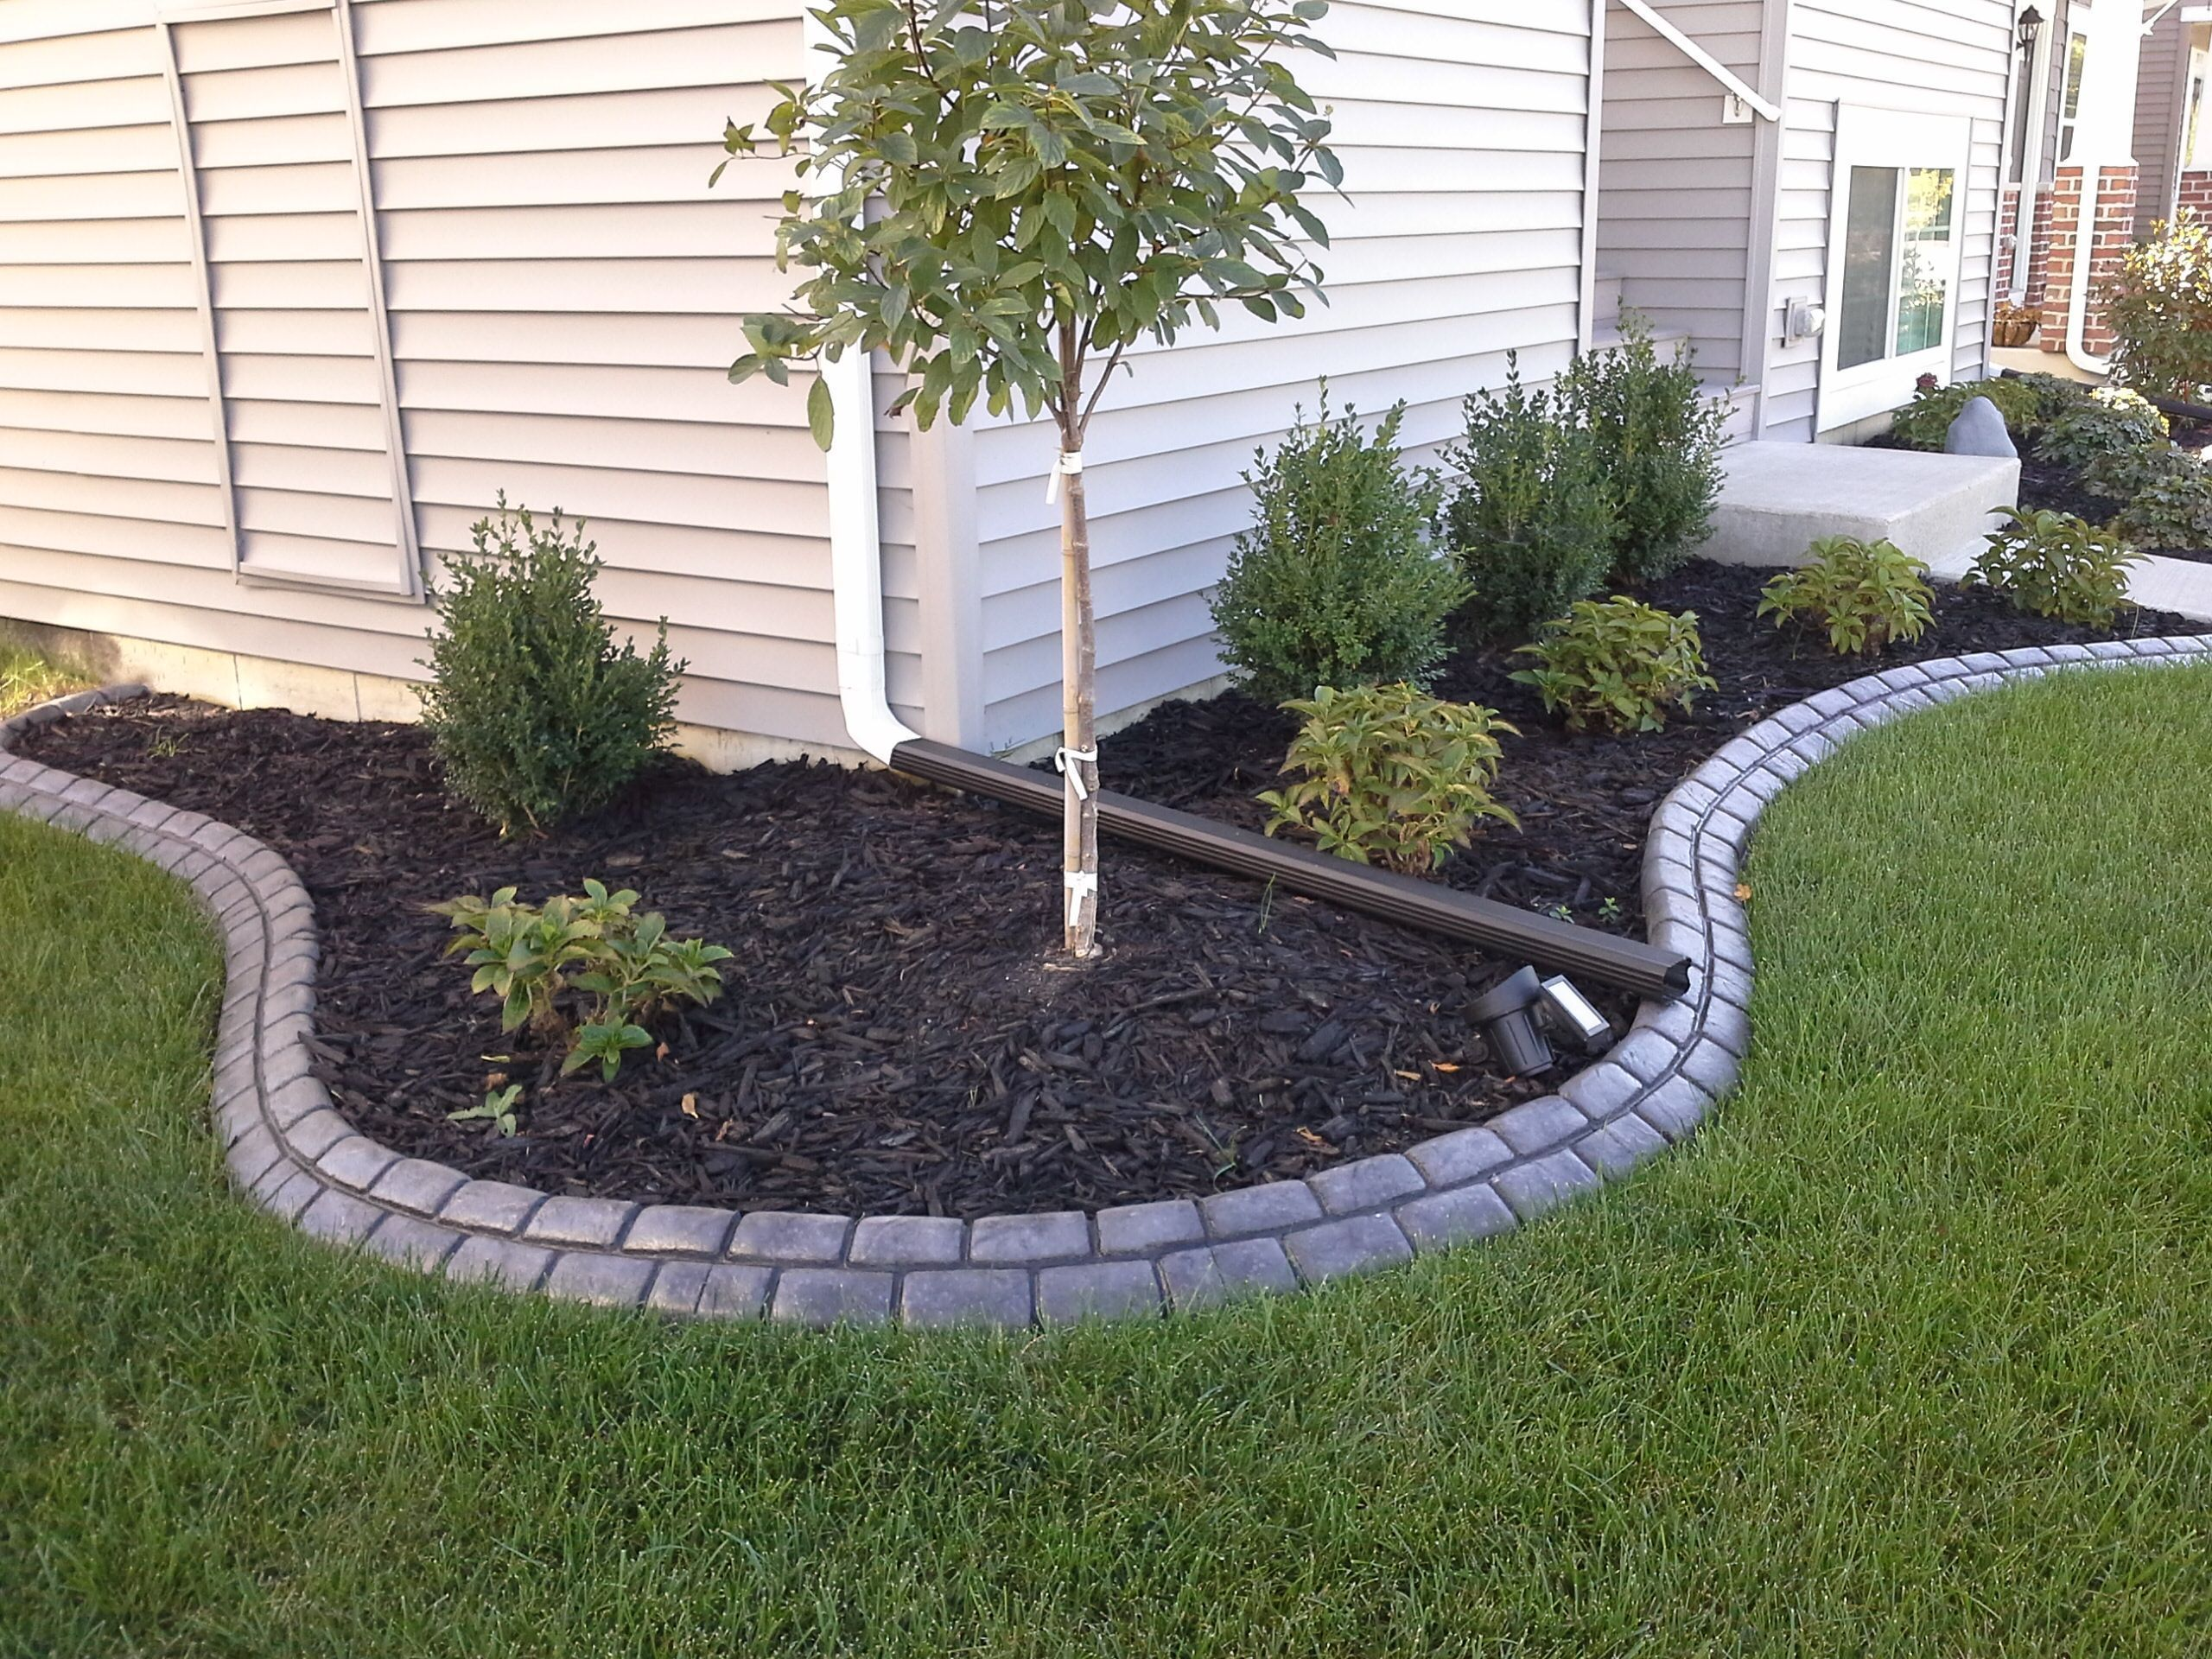 Landscaping Ideas For Small Front Yards 7467348167 Simplebackyard Front House Landscaping Front Yard Landscaping Design Landscape Ideas Front Yard Curb Appeal